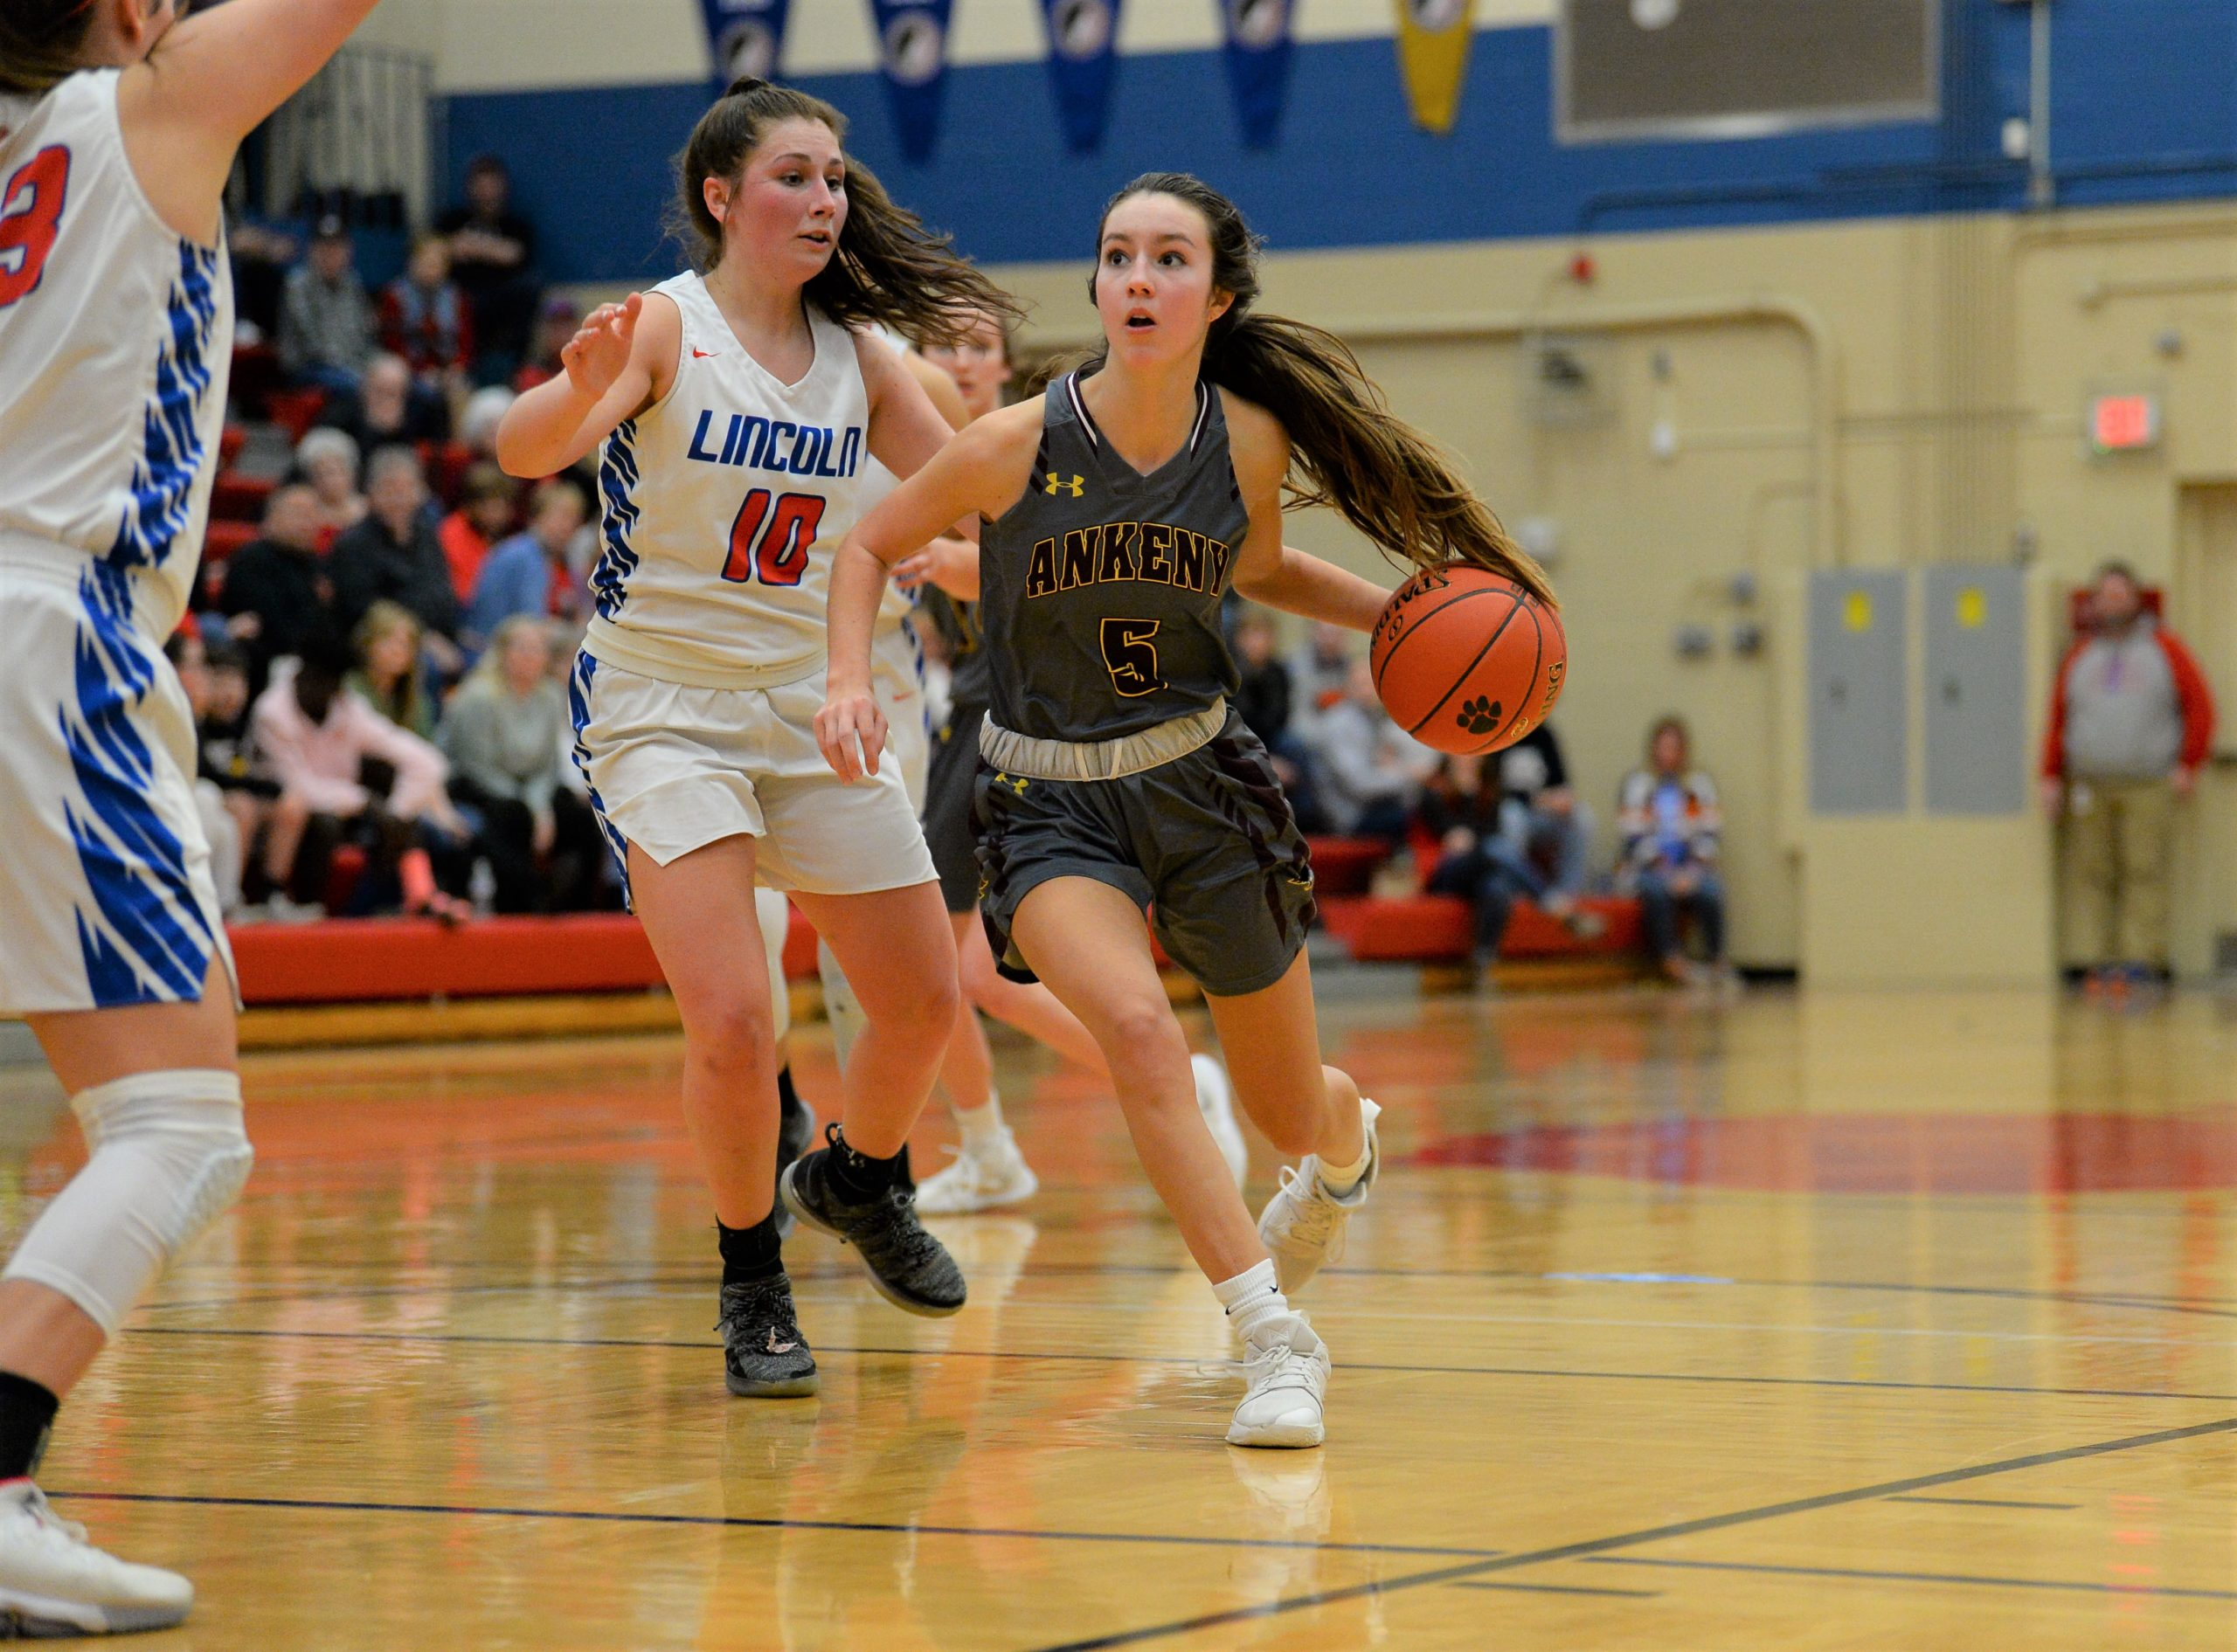 Third-quarter scoring drought proves costly as Hawkettes fall to C.B. Lincoln